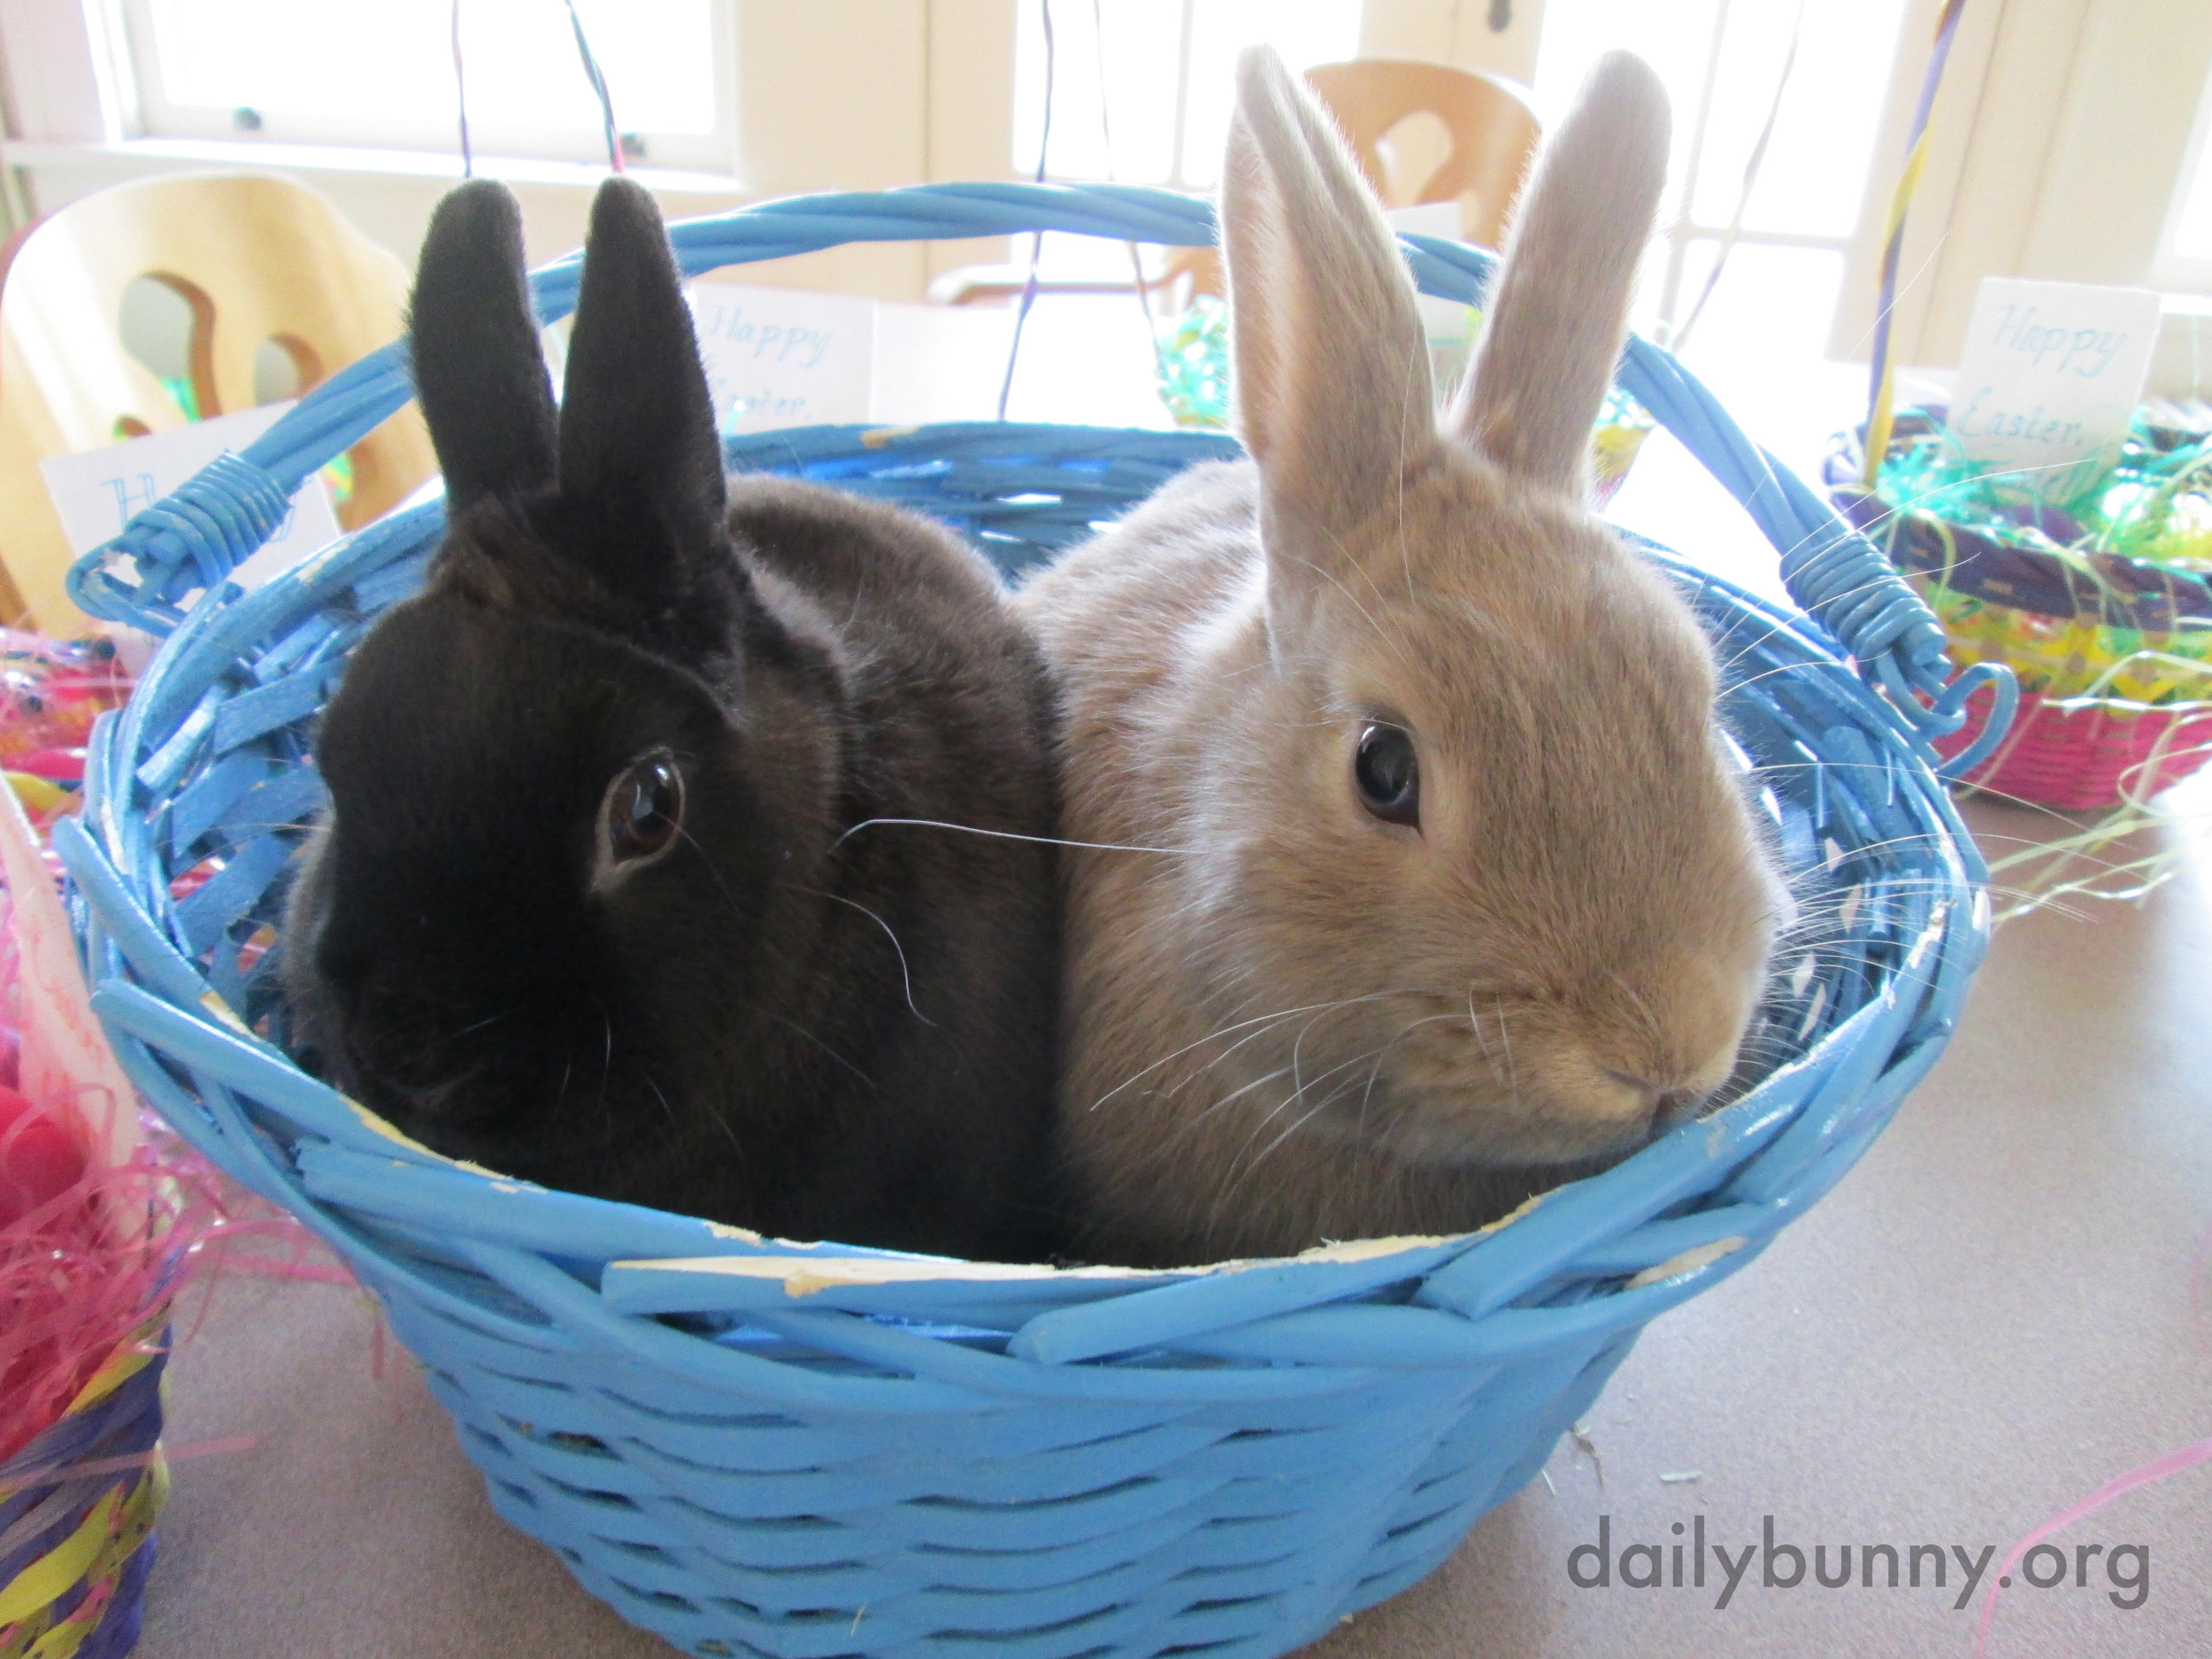 The Daily Bunny's Easter 2014 Mega-Post! 2